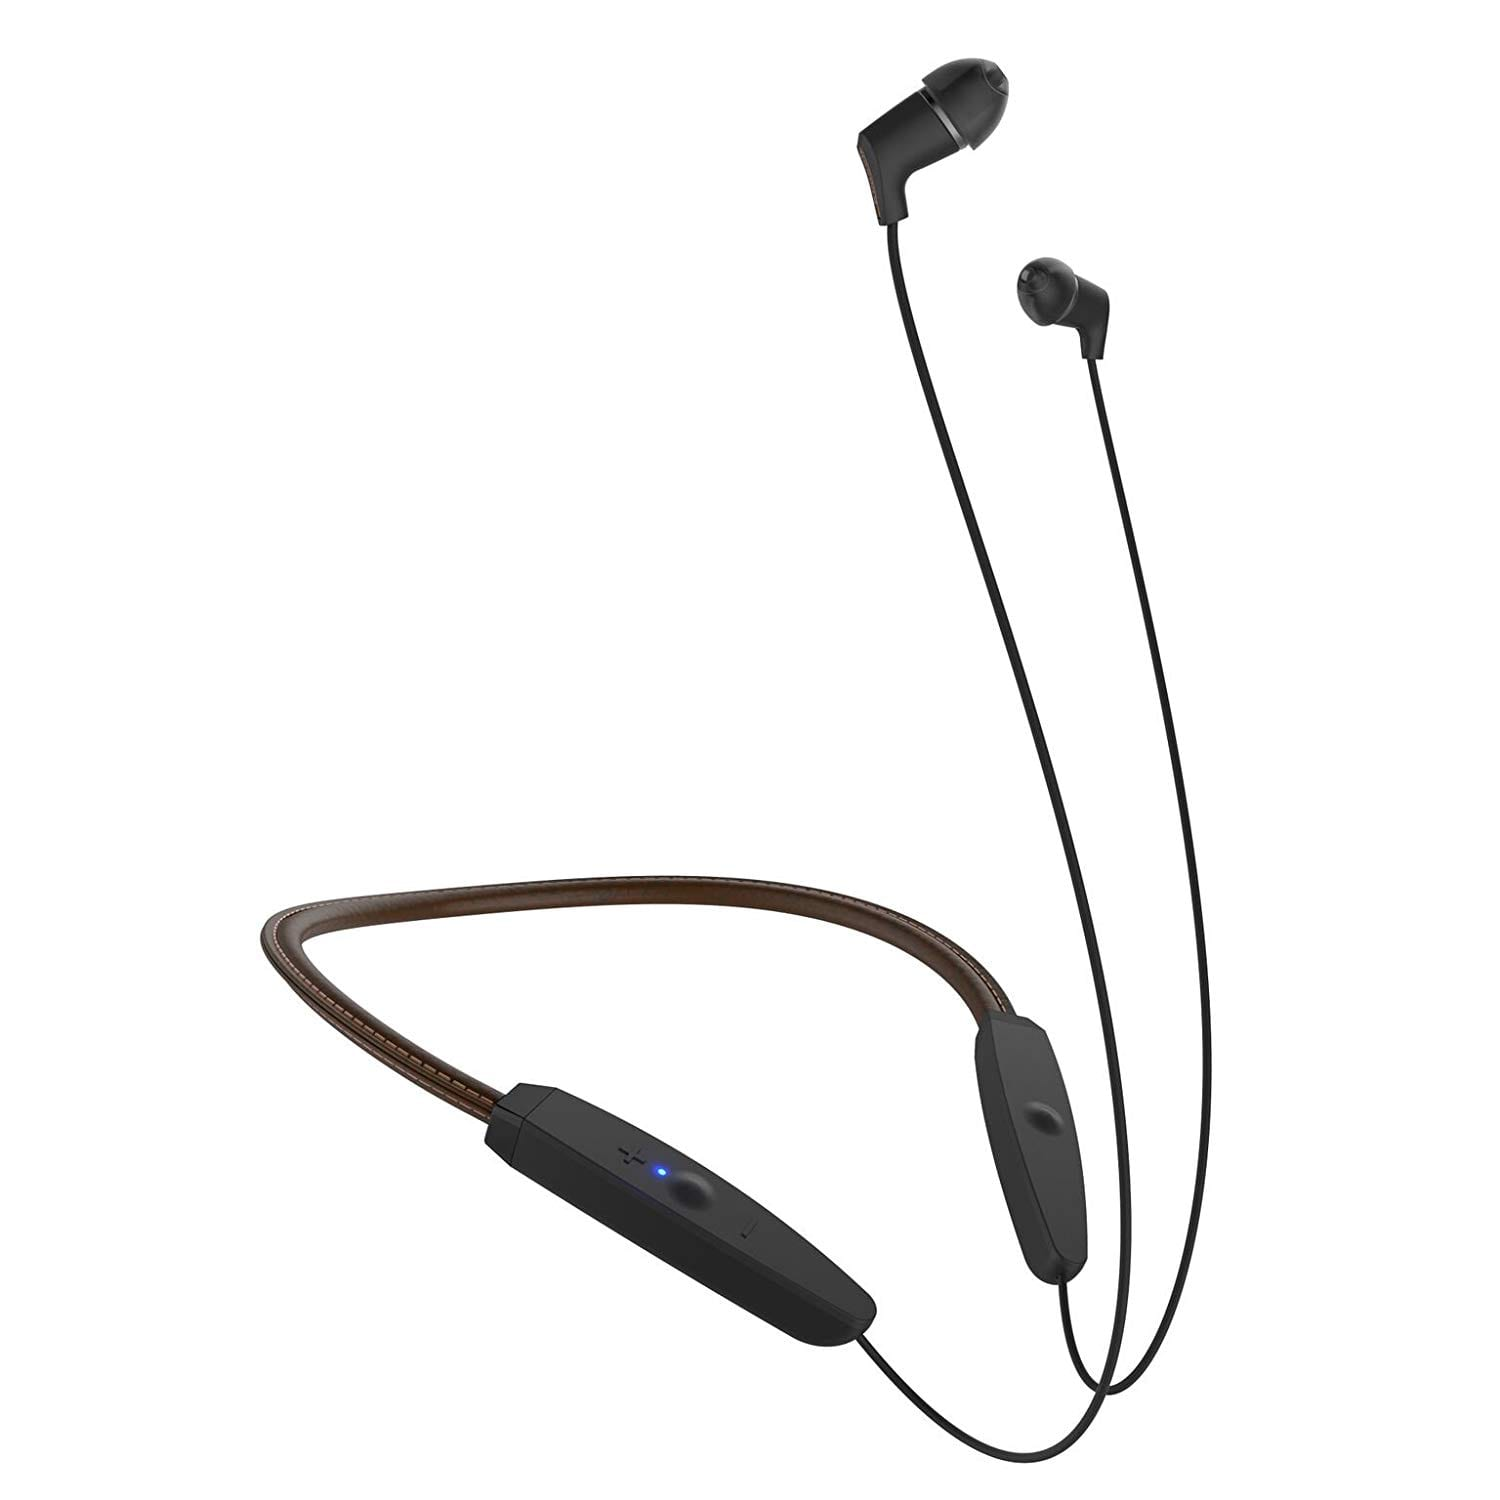 Amazon has Klipsch R5 Neckband Brown for $35